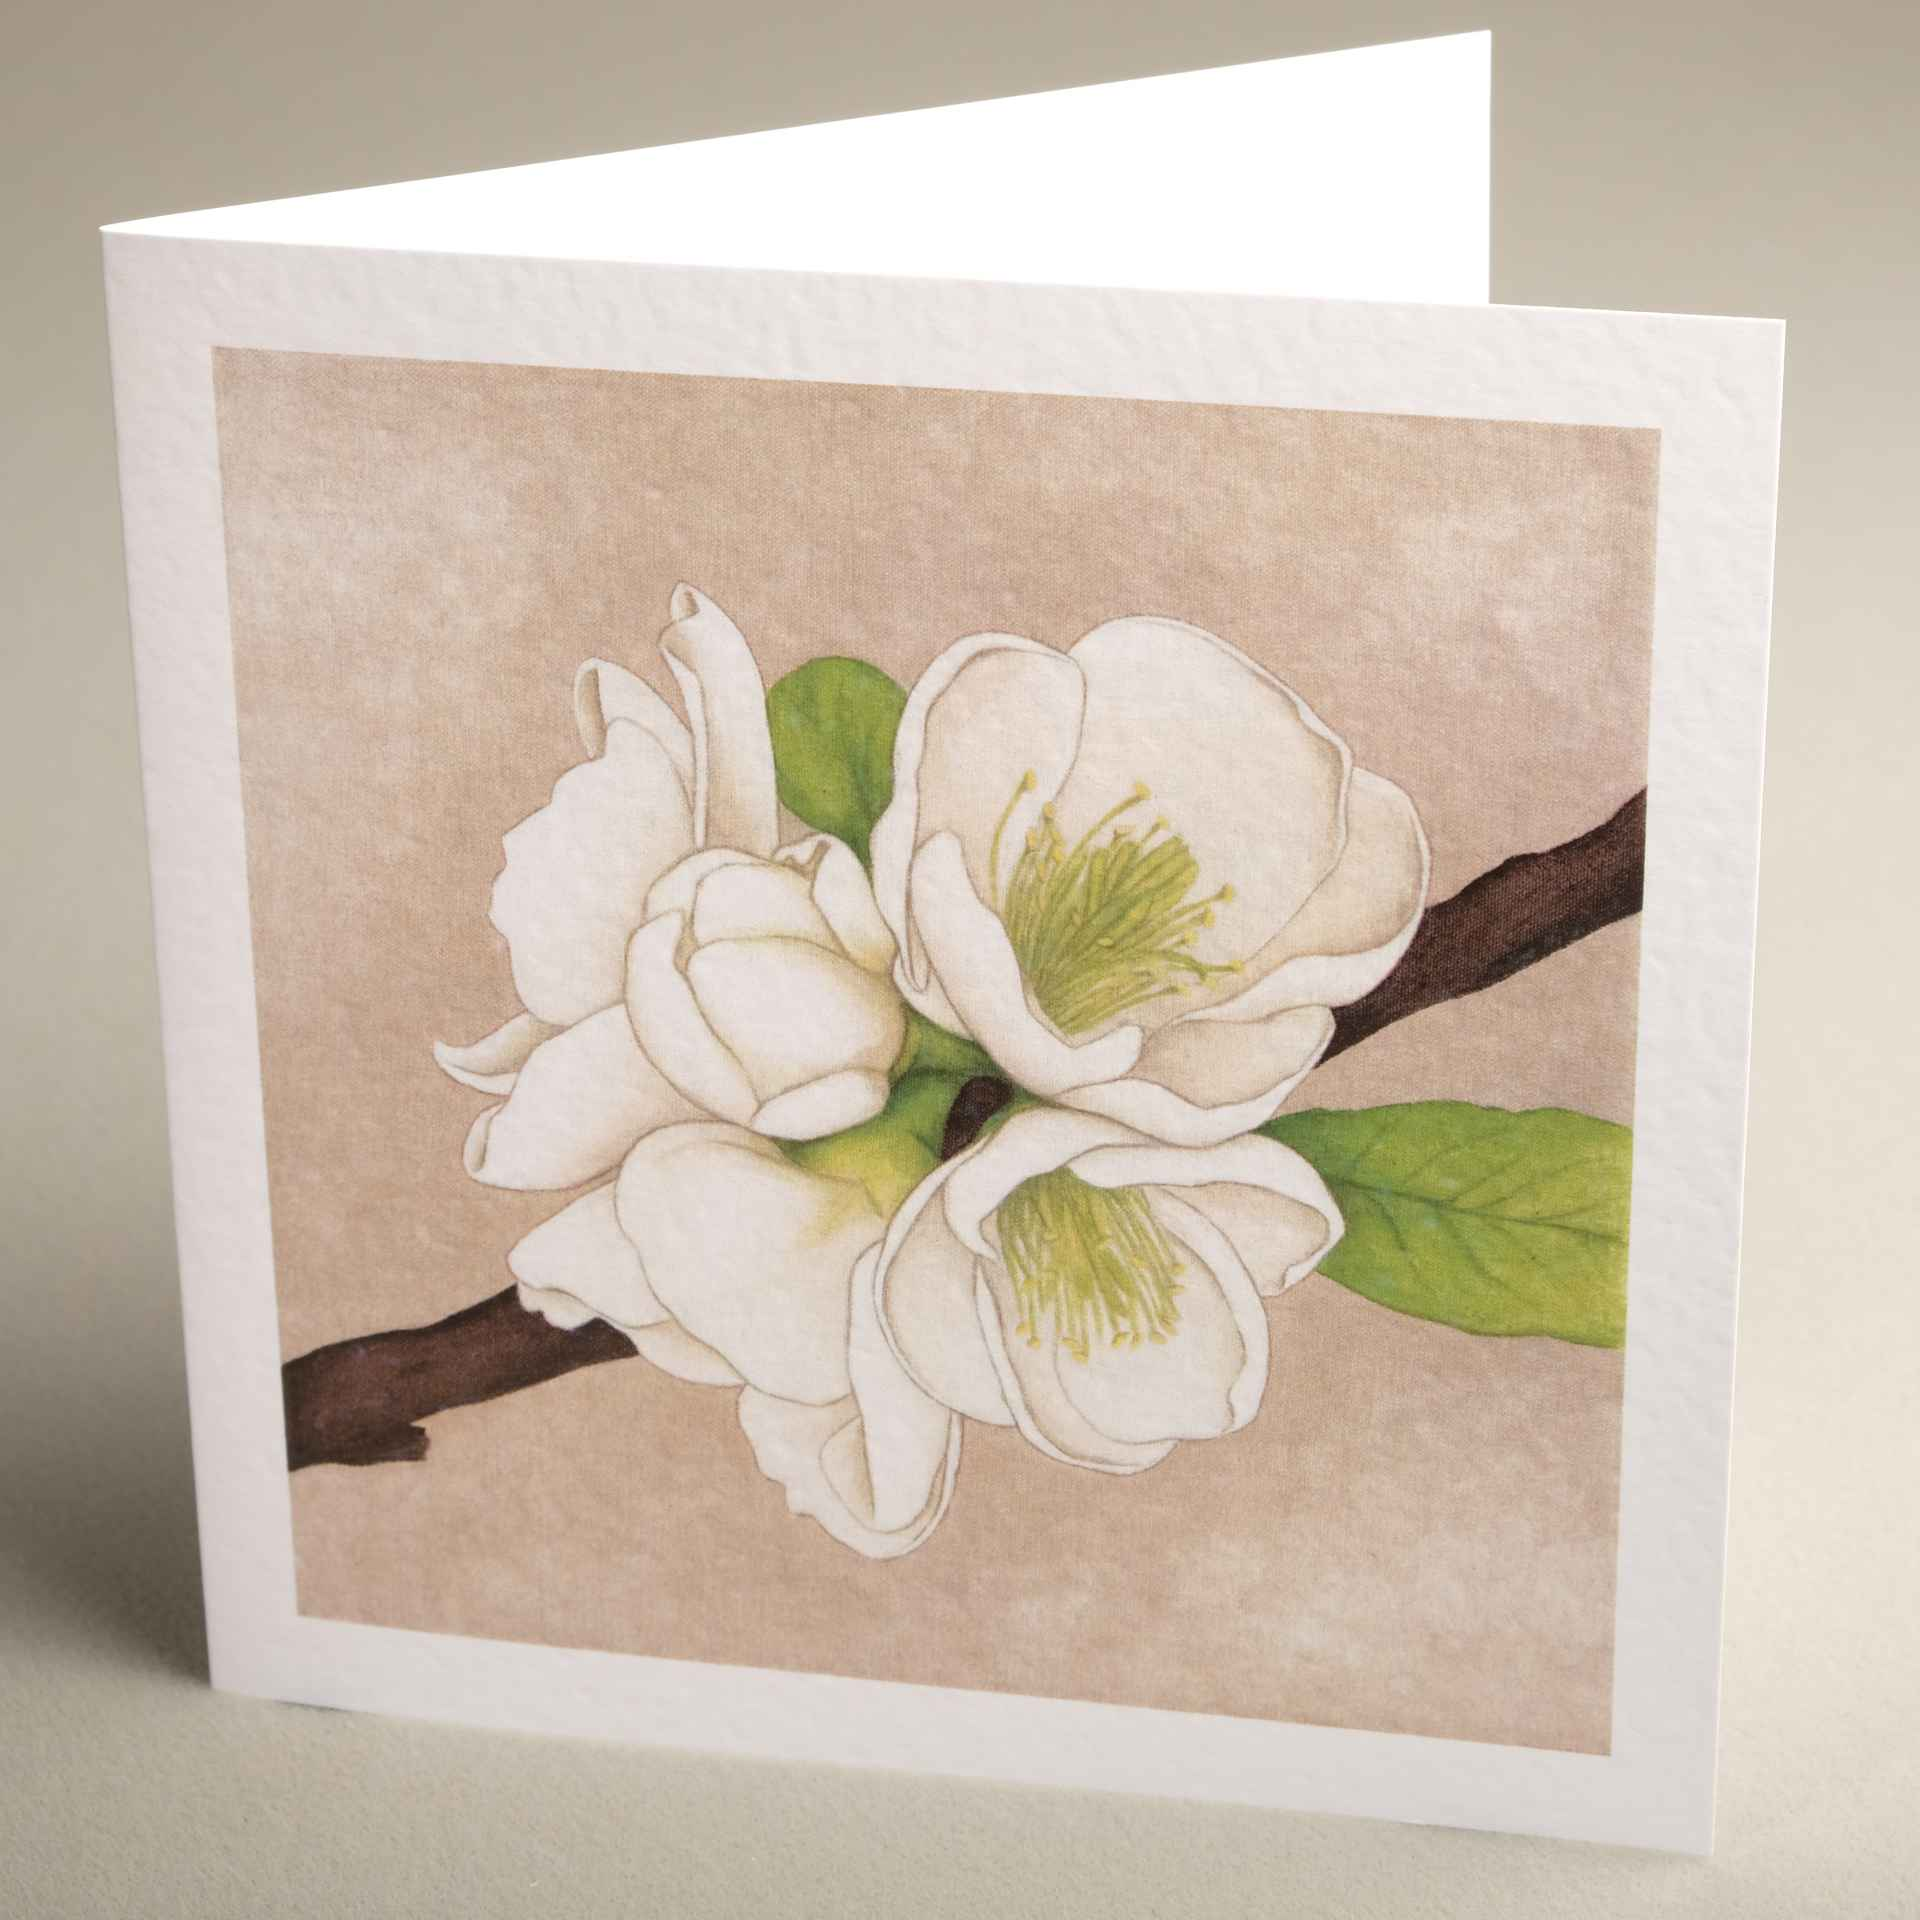 Floral Greetings Cards From Jaci Hogan Art Flower Design Greetings